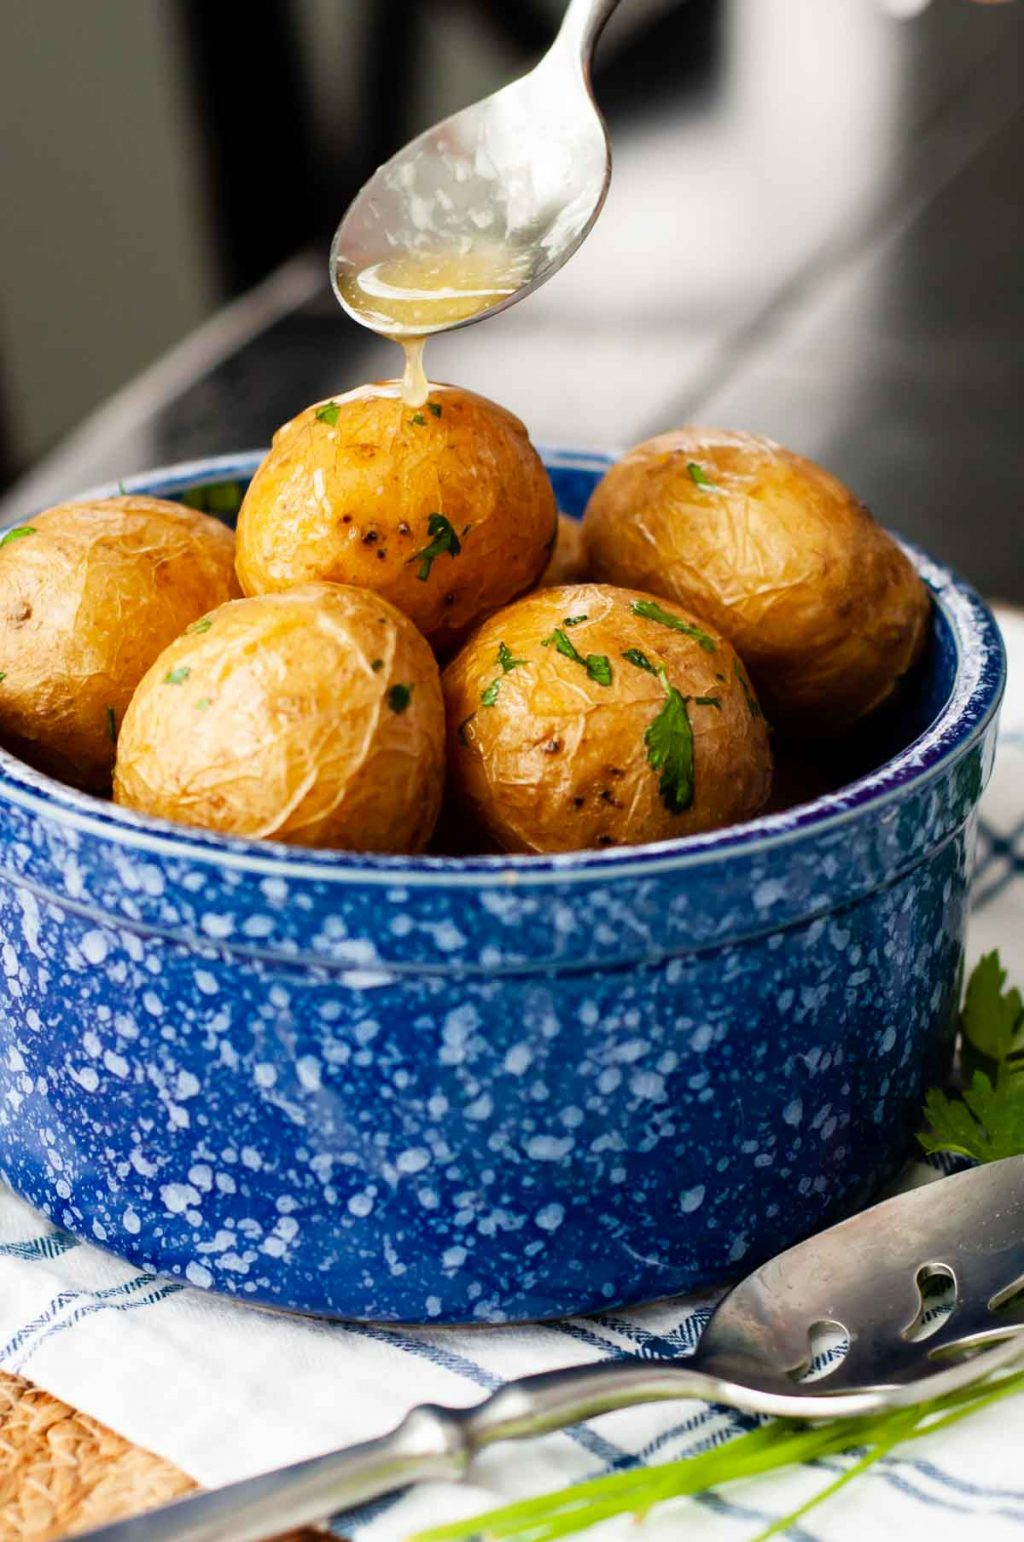 butter being spooned over a bowl of salt potatoes